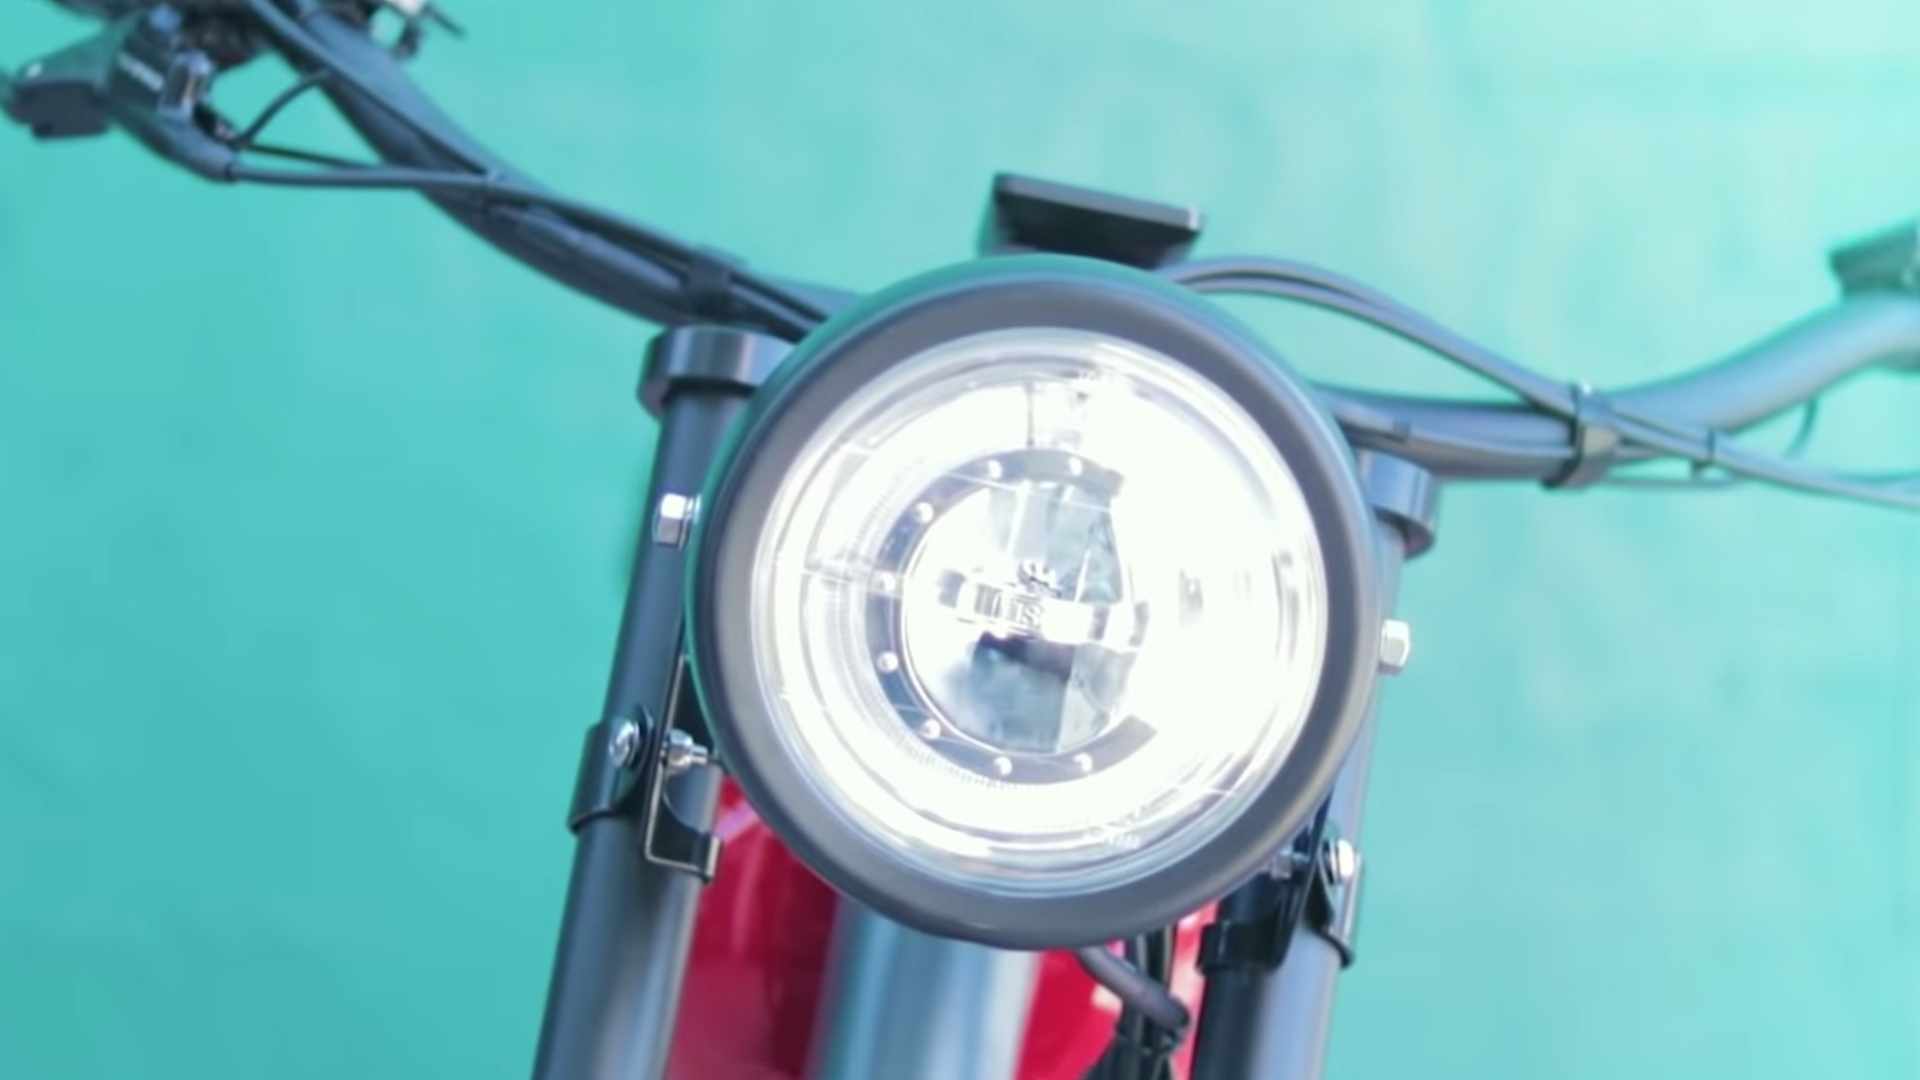 electrified-reviews-civi-bikes-cheetah-electric-bike-review-headlight.jpg